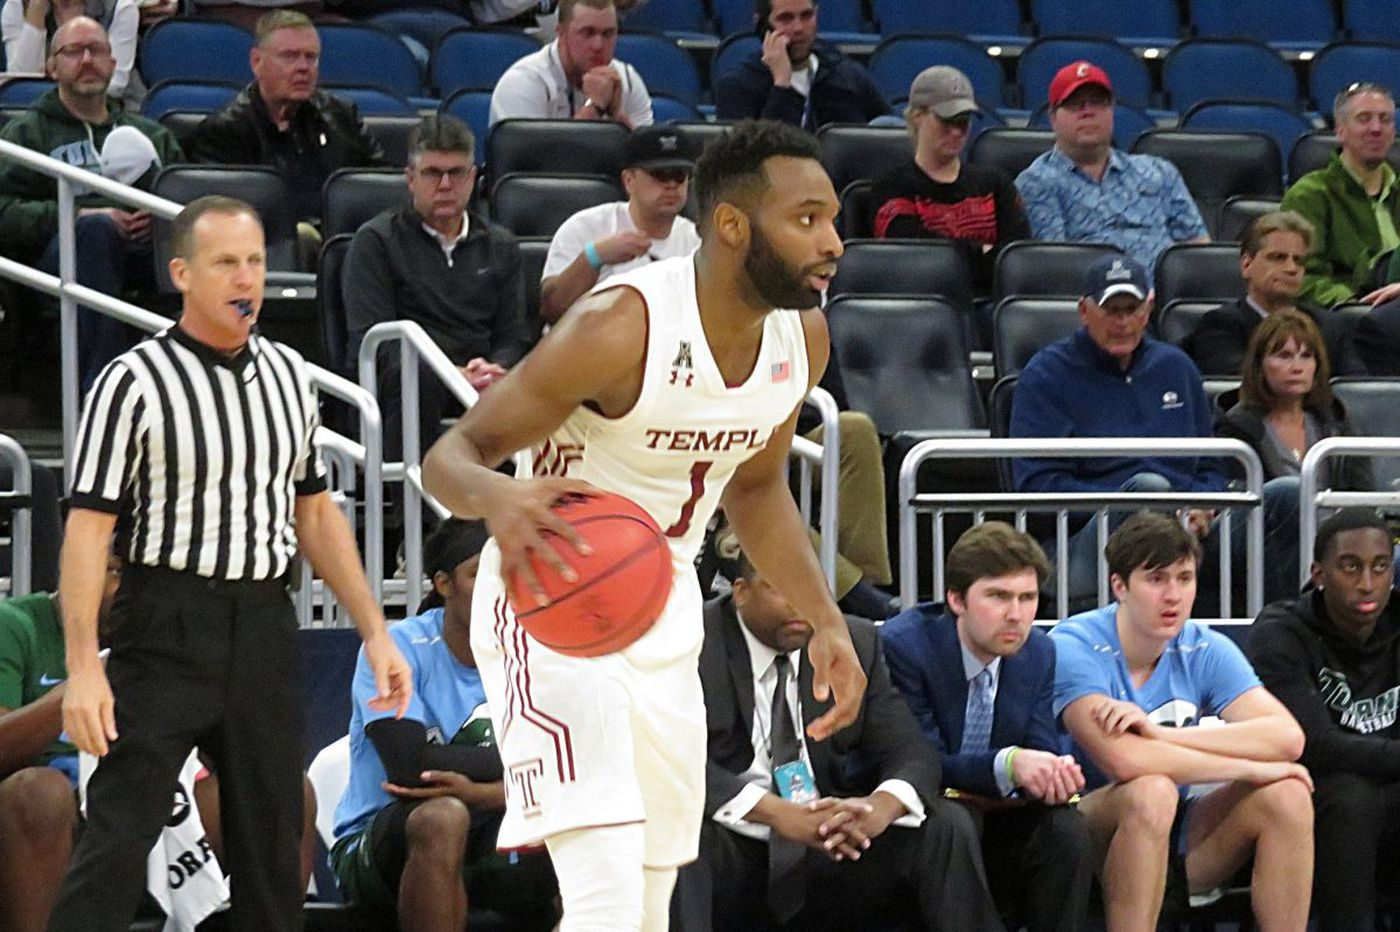 Temple's Josh Brown happy to tie a school record and extend his career